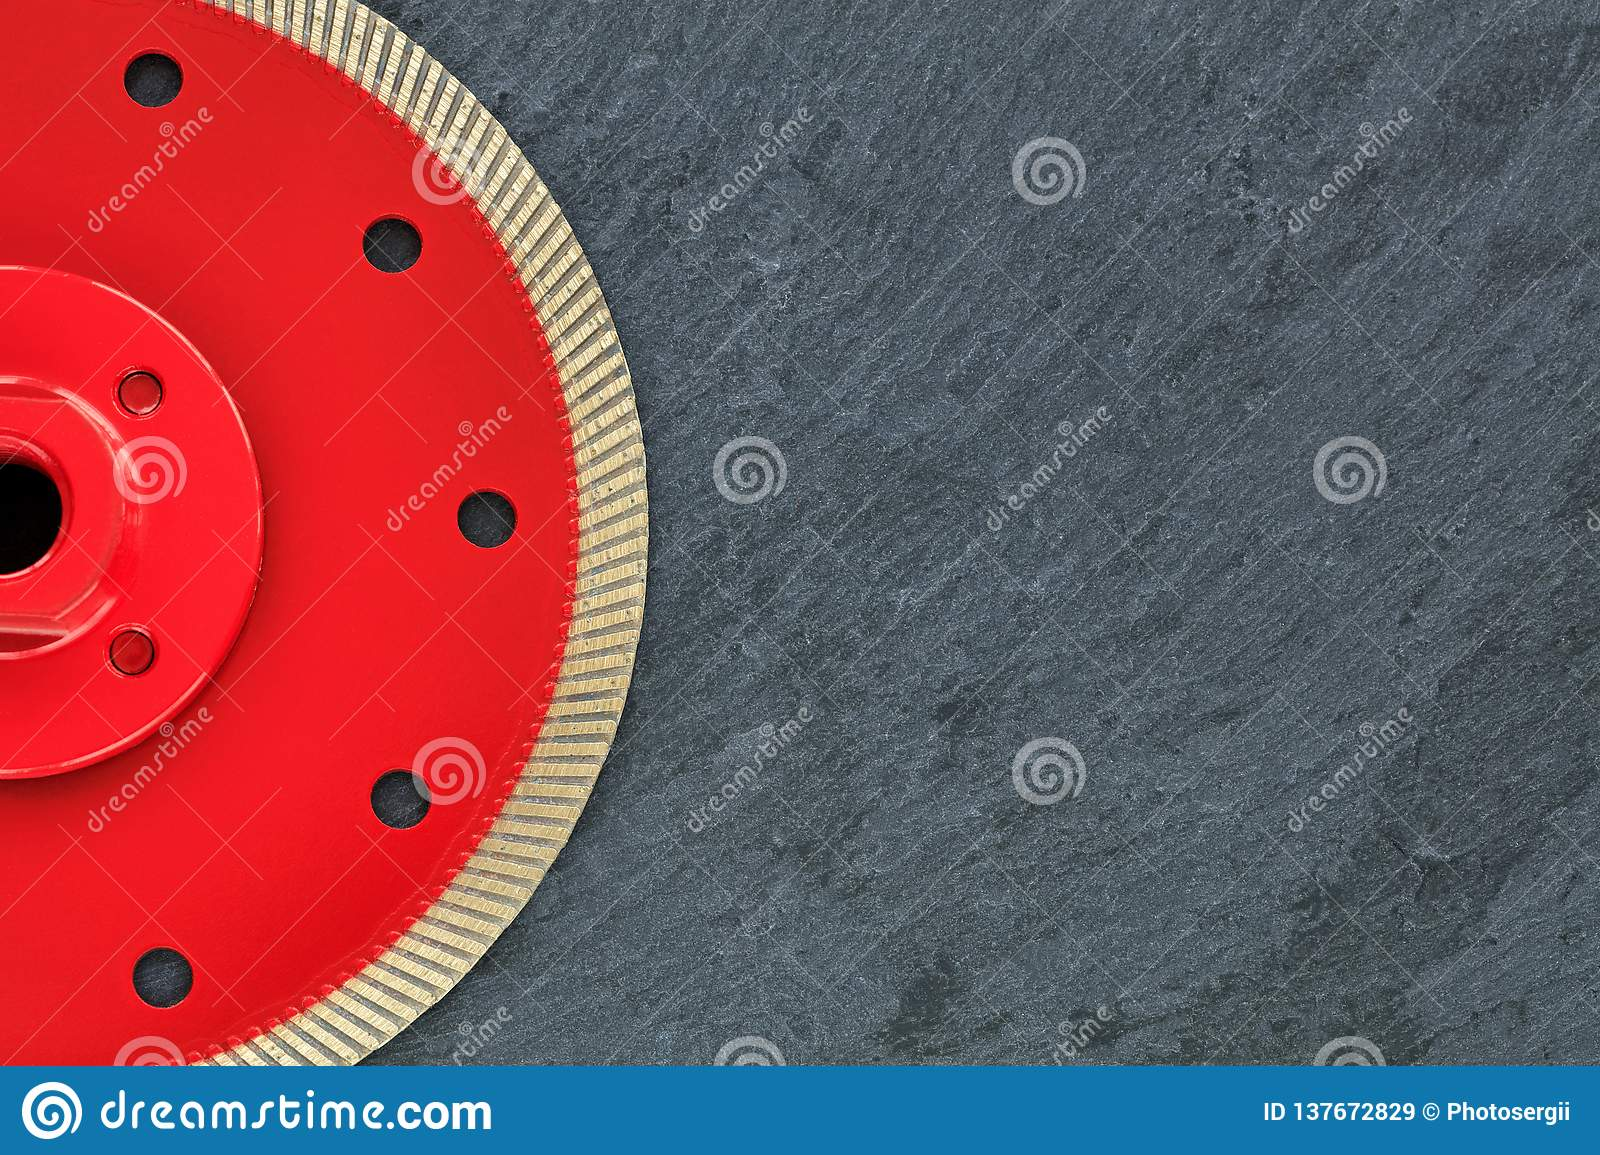 Half of the diamond cutting wheel is red with a threaded nut on a background of gray granite